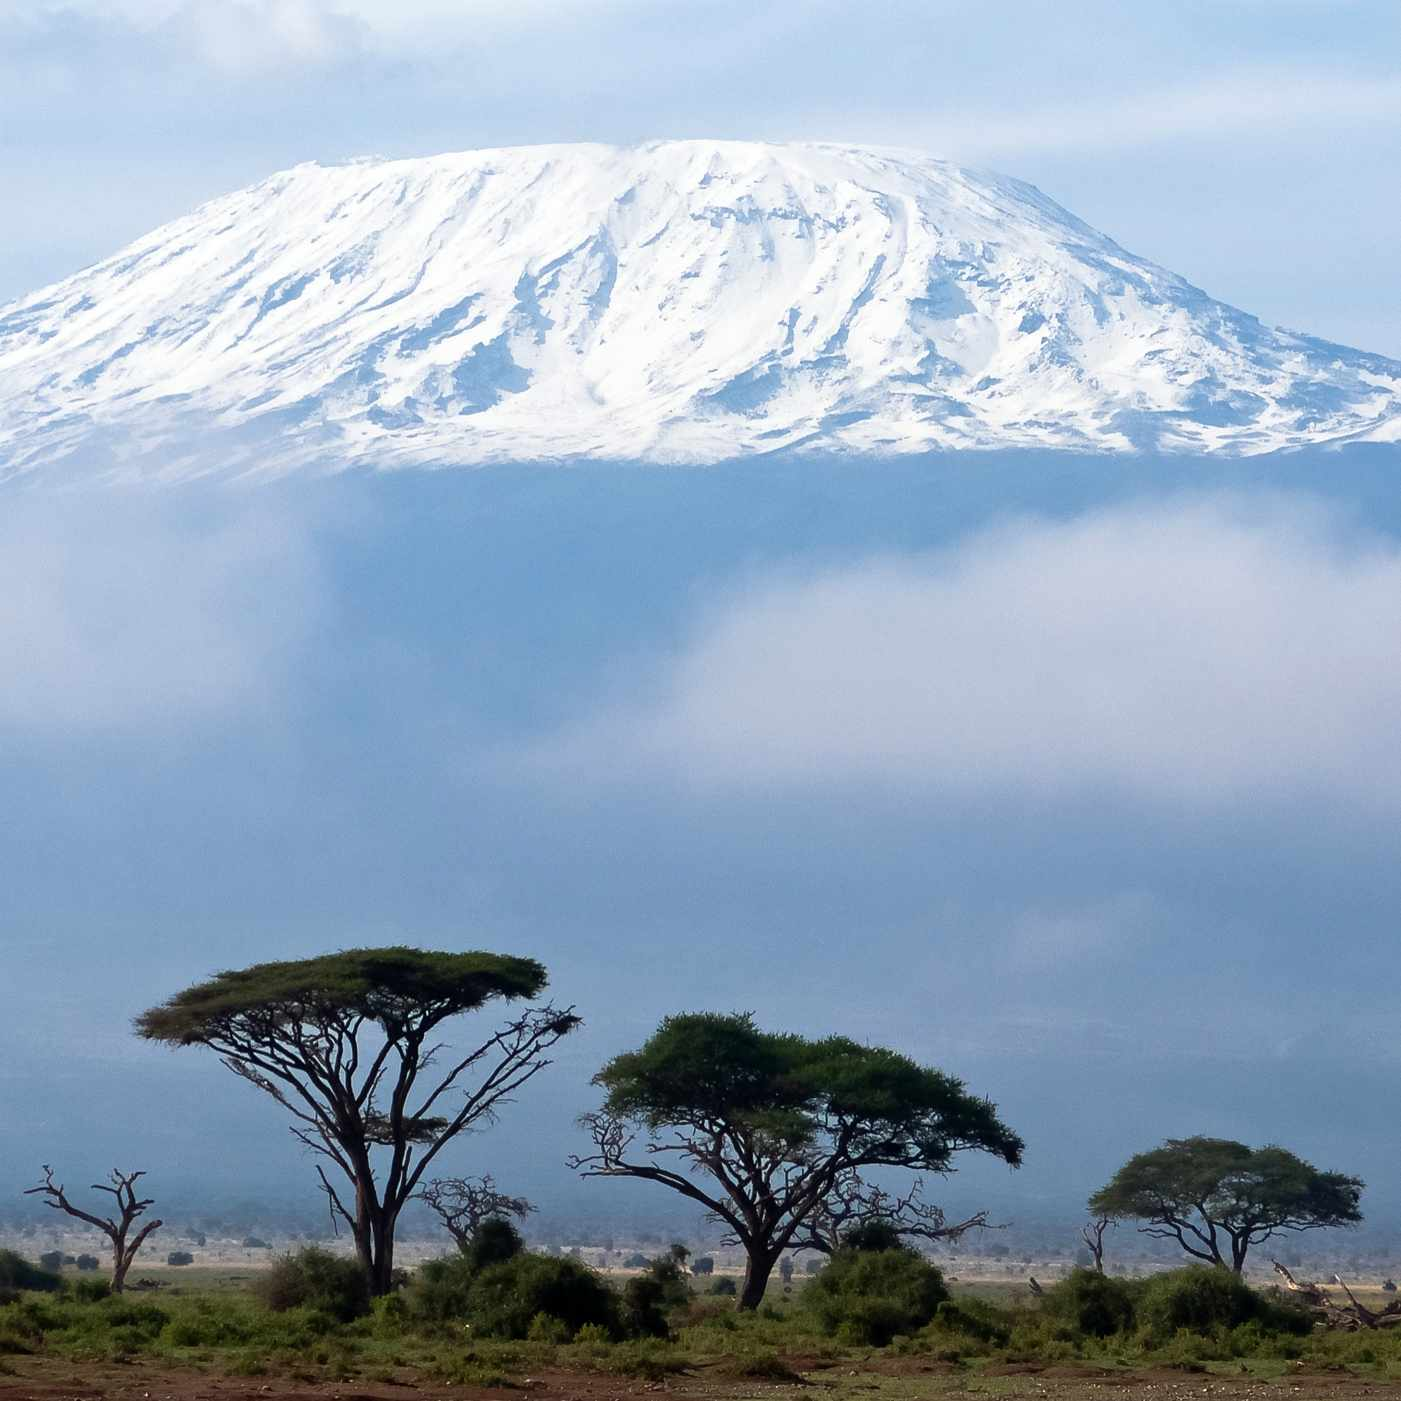 long distance photo of Mt. Kilimanjaro in Africa